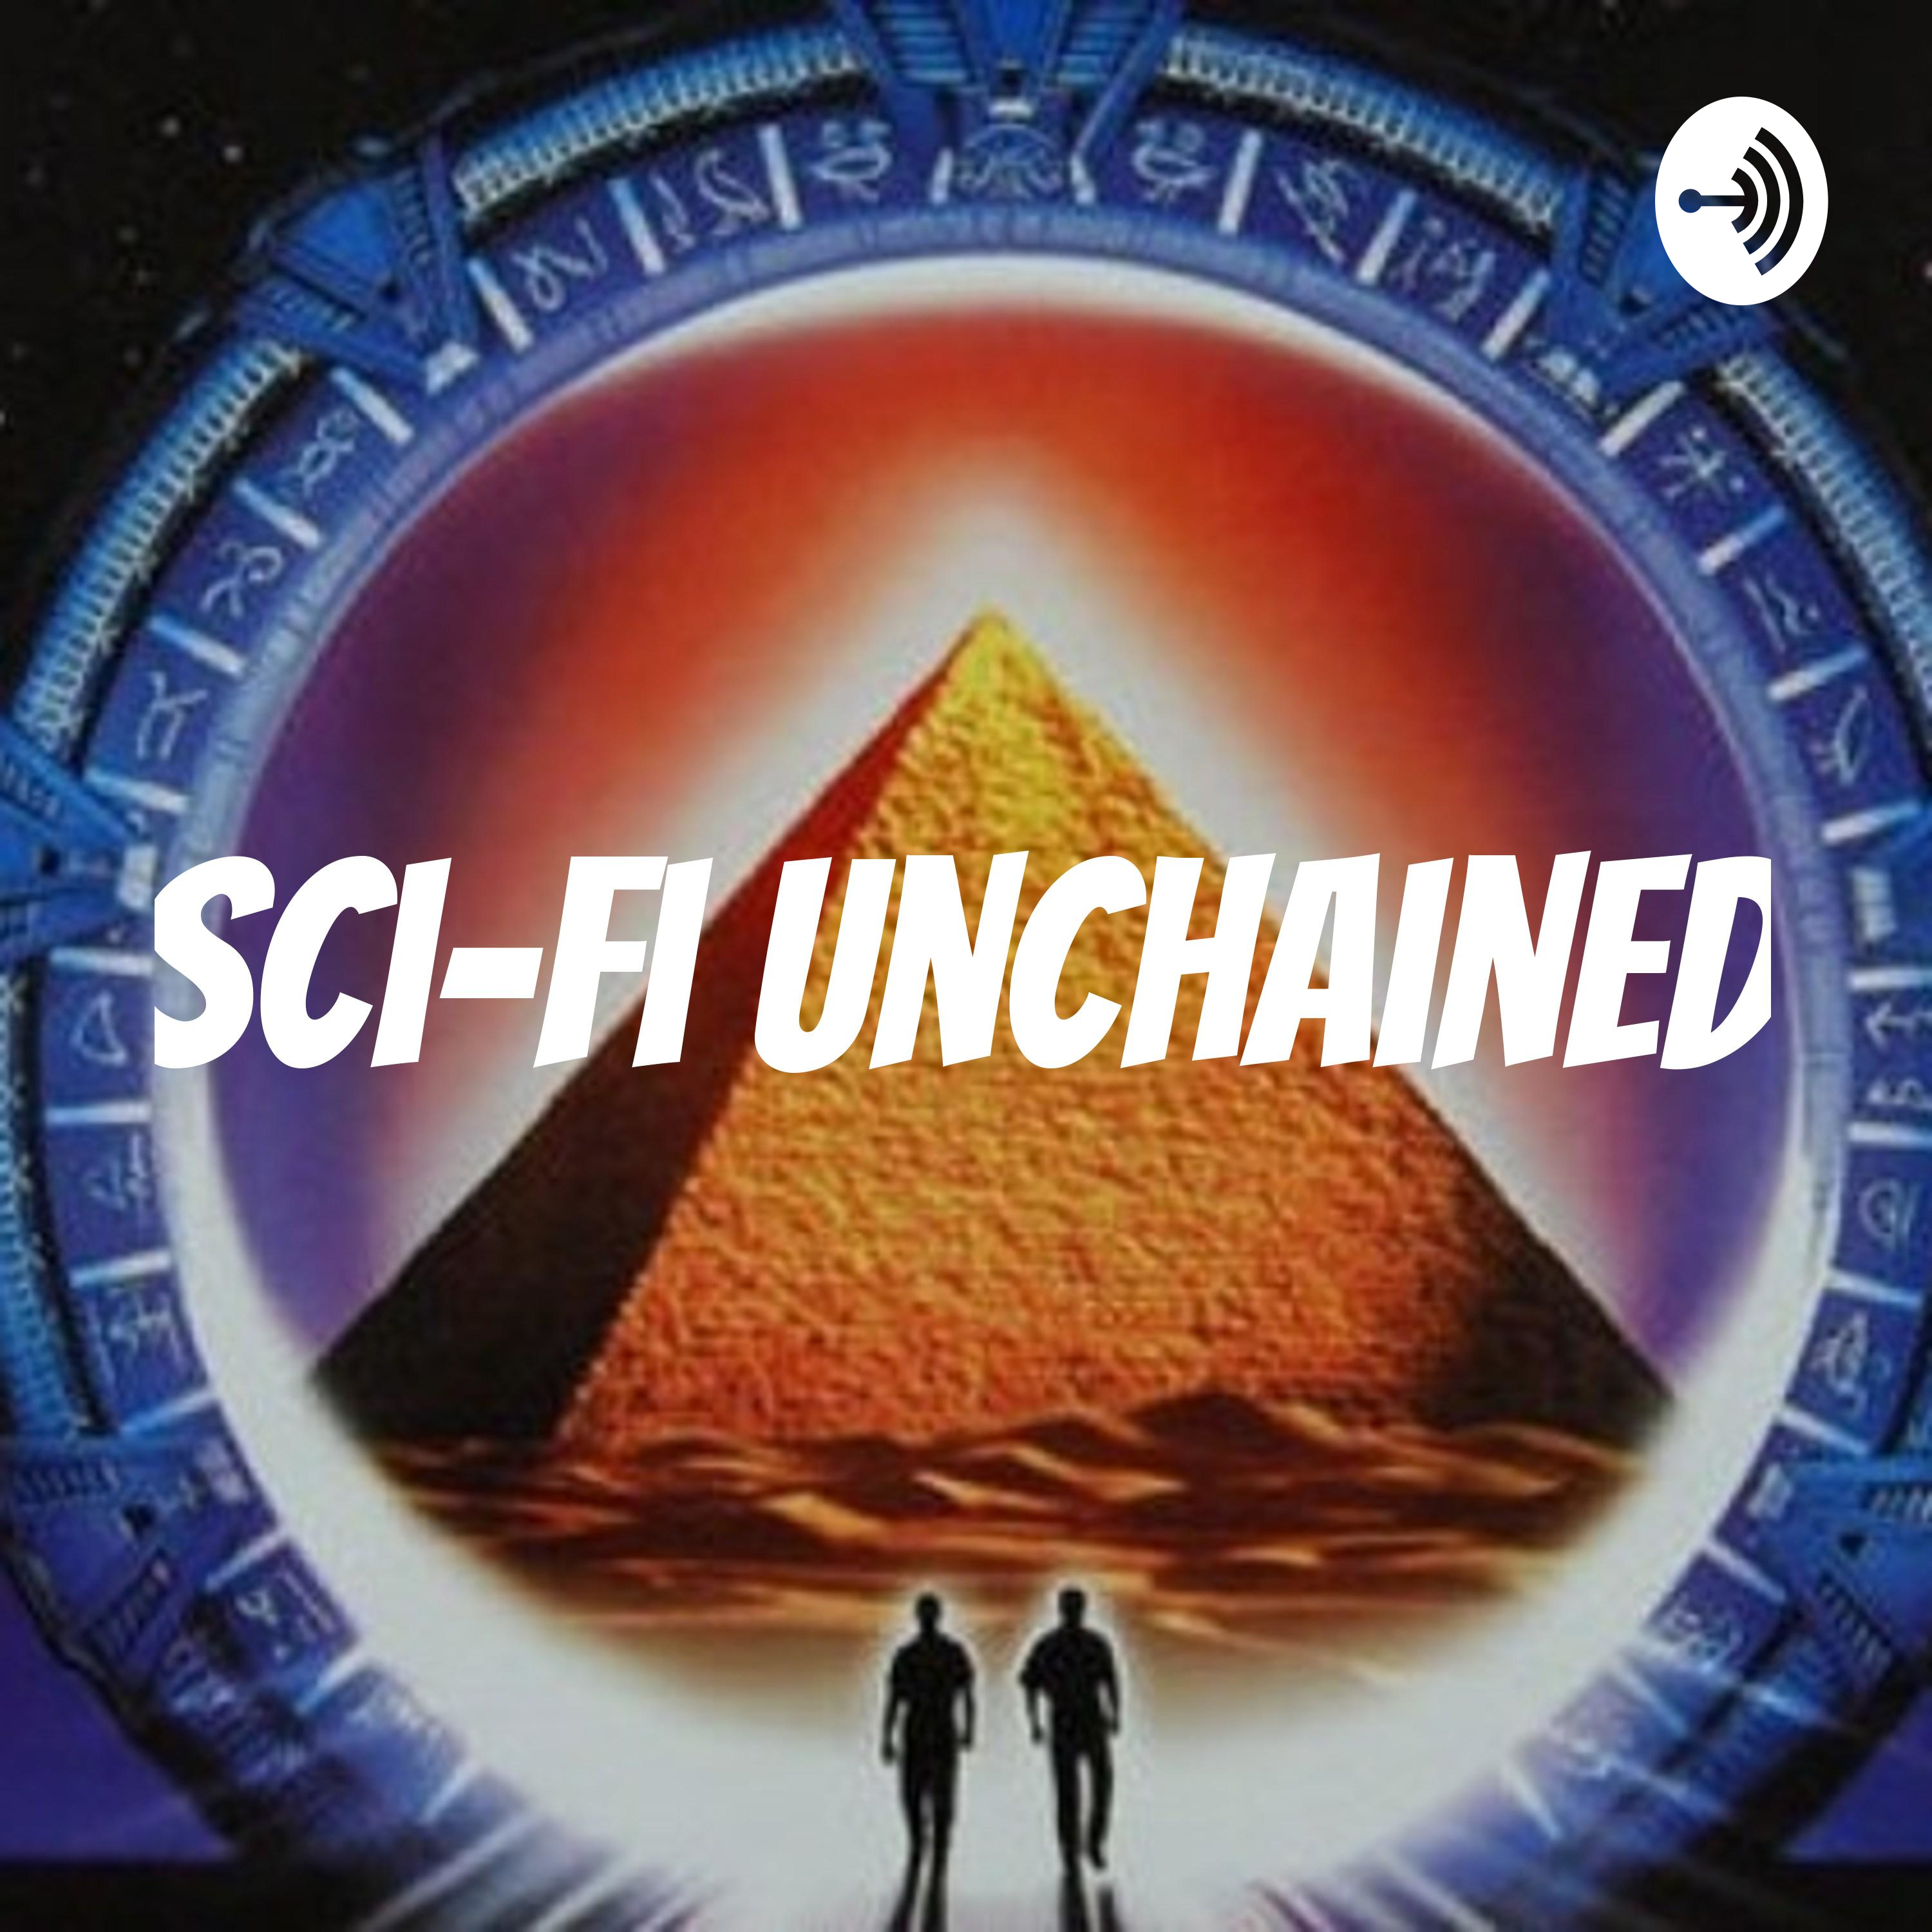 Sci-fi Unchained